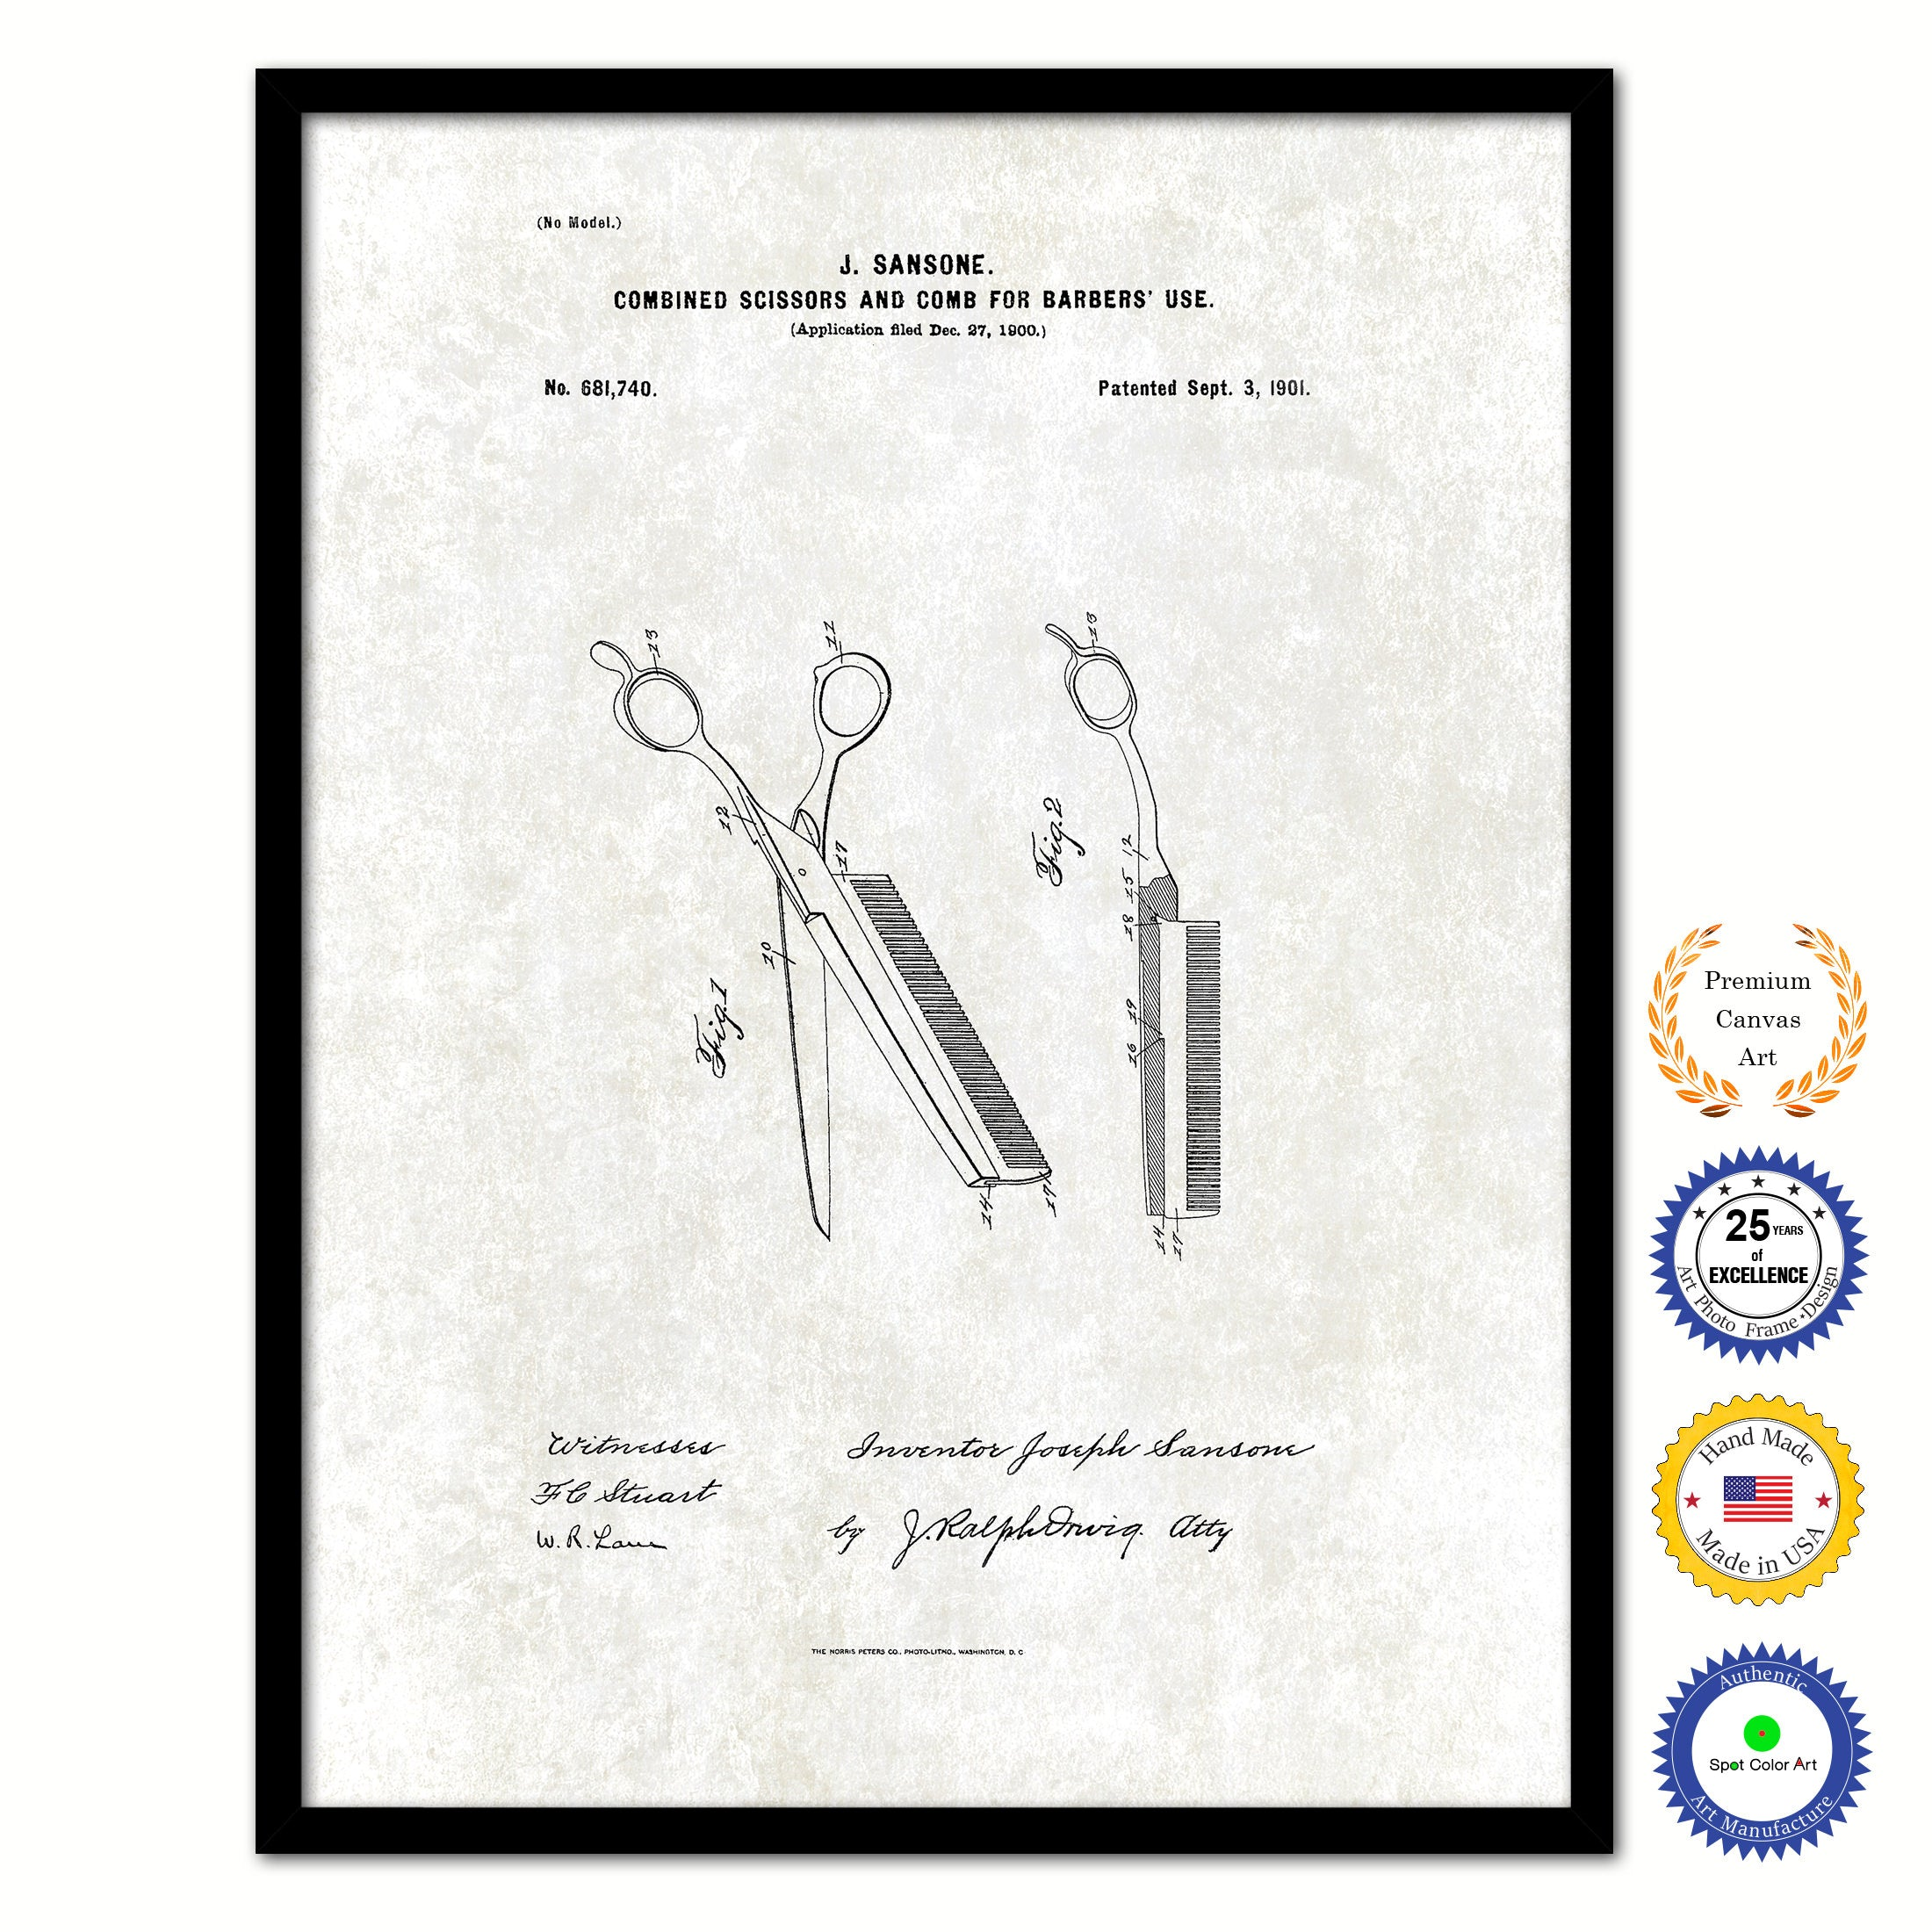 1901 Combined Scissors and Comb for Barbers Use Vintage Patent Artwork Black Framed Canvas Print Home Office Decor Great Gift for Barber Salon Hair Stylist